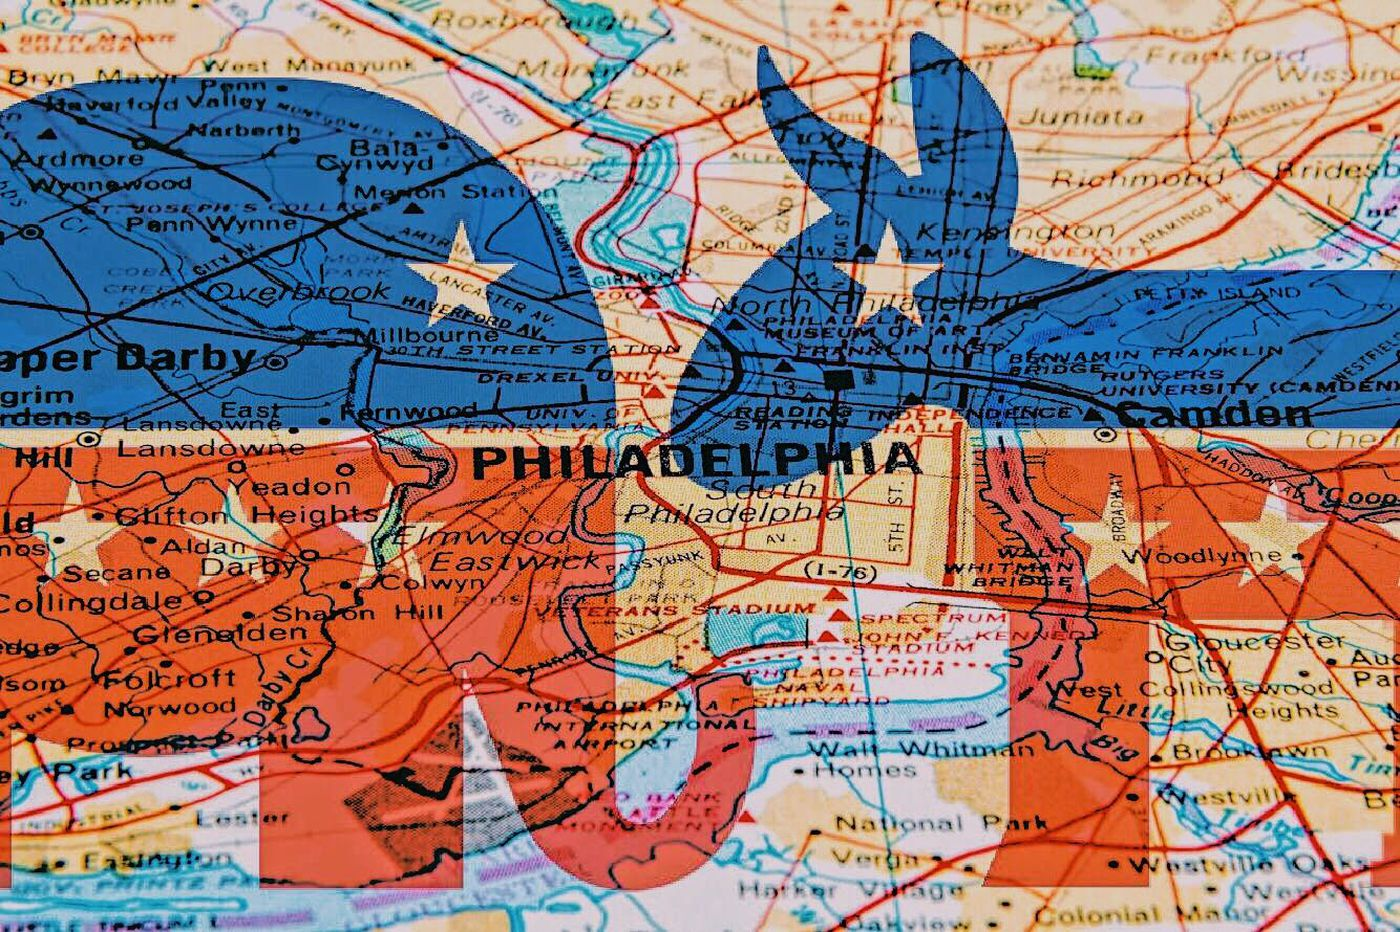 A looming civil rights fight could shift political power away from Philly and North Jersey